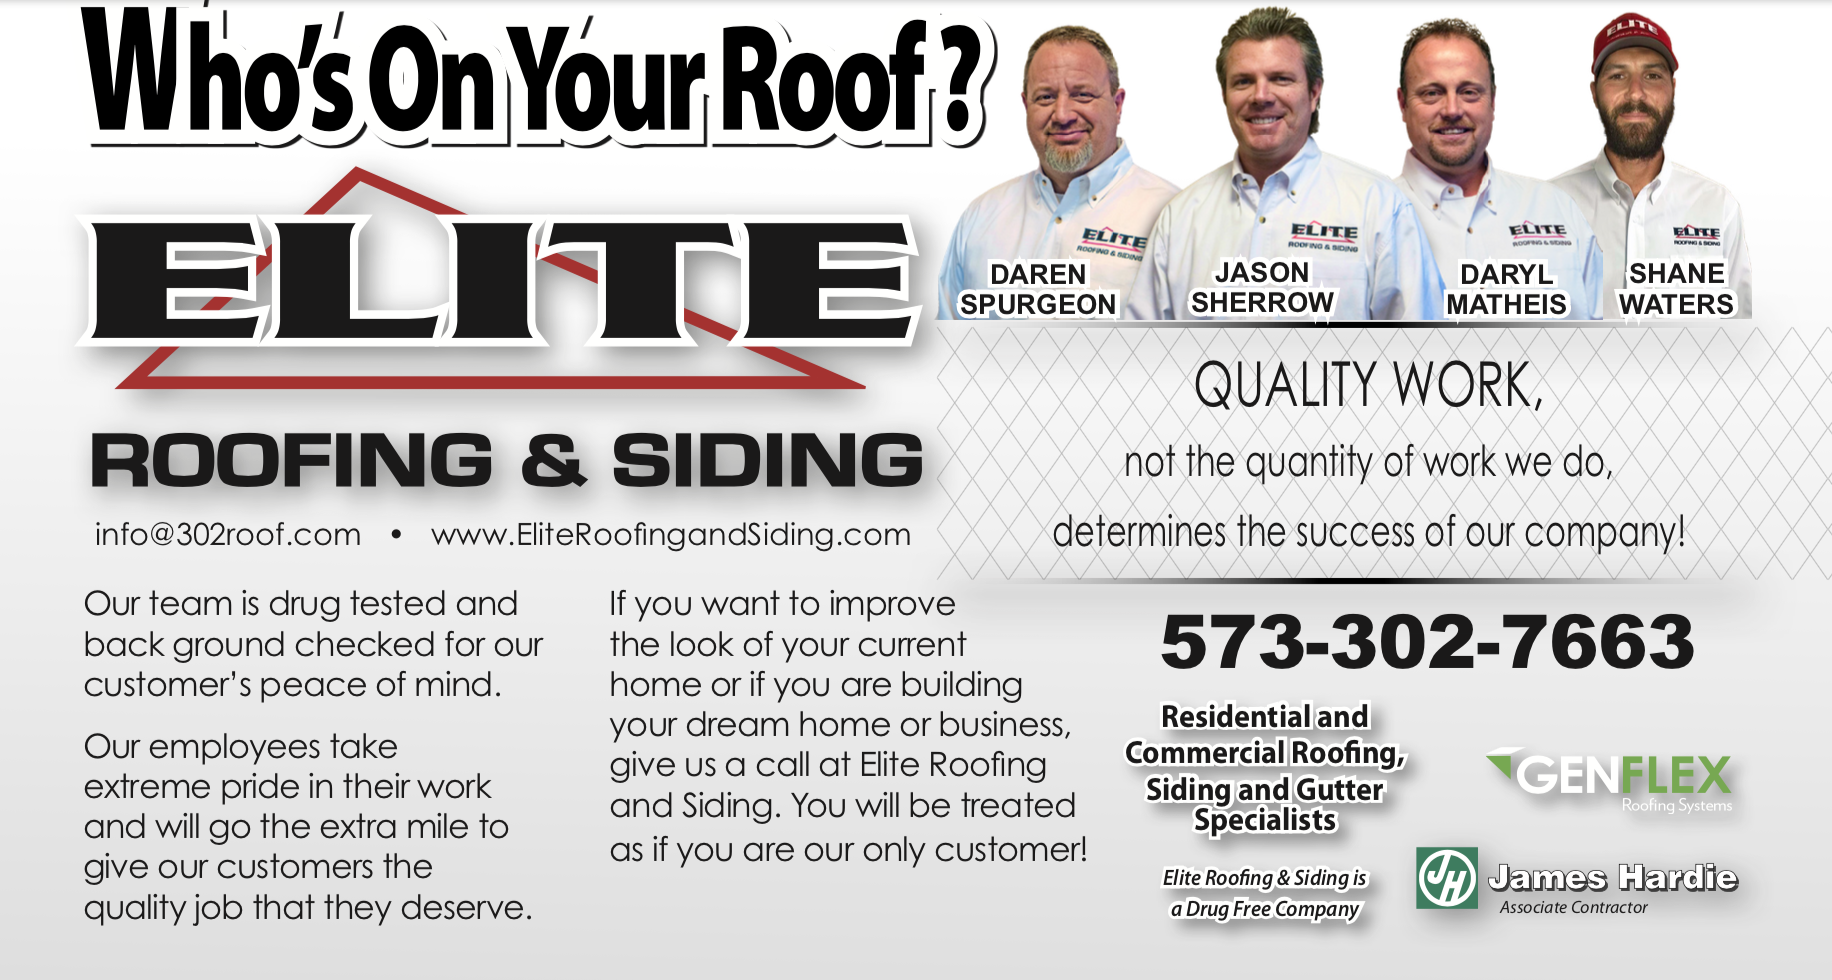 Elite Roofing and Siding Team